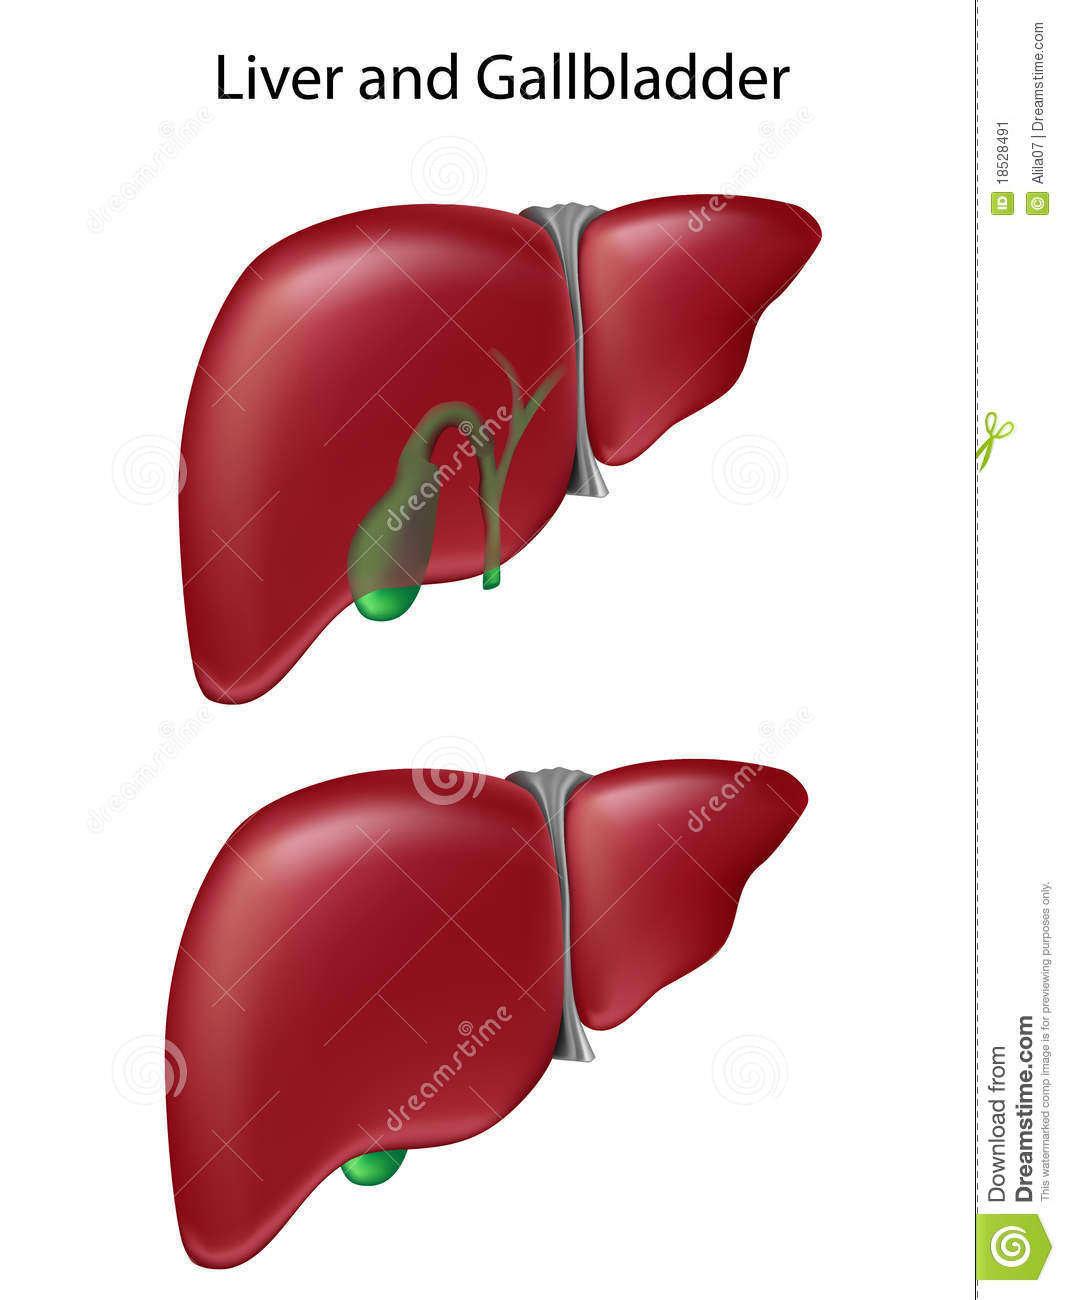 Gallbladder And Liver Anatomy